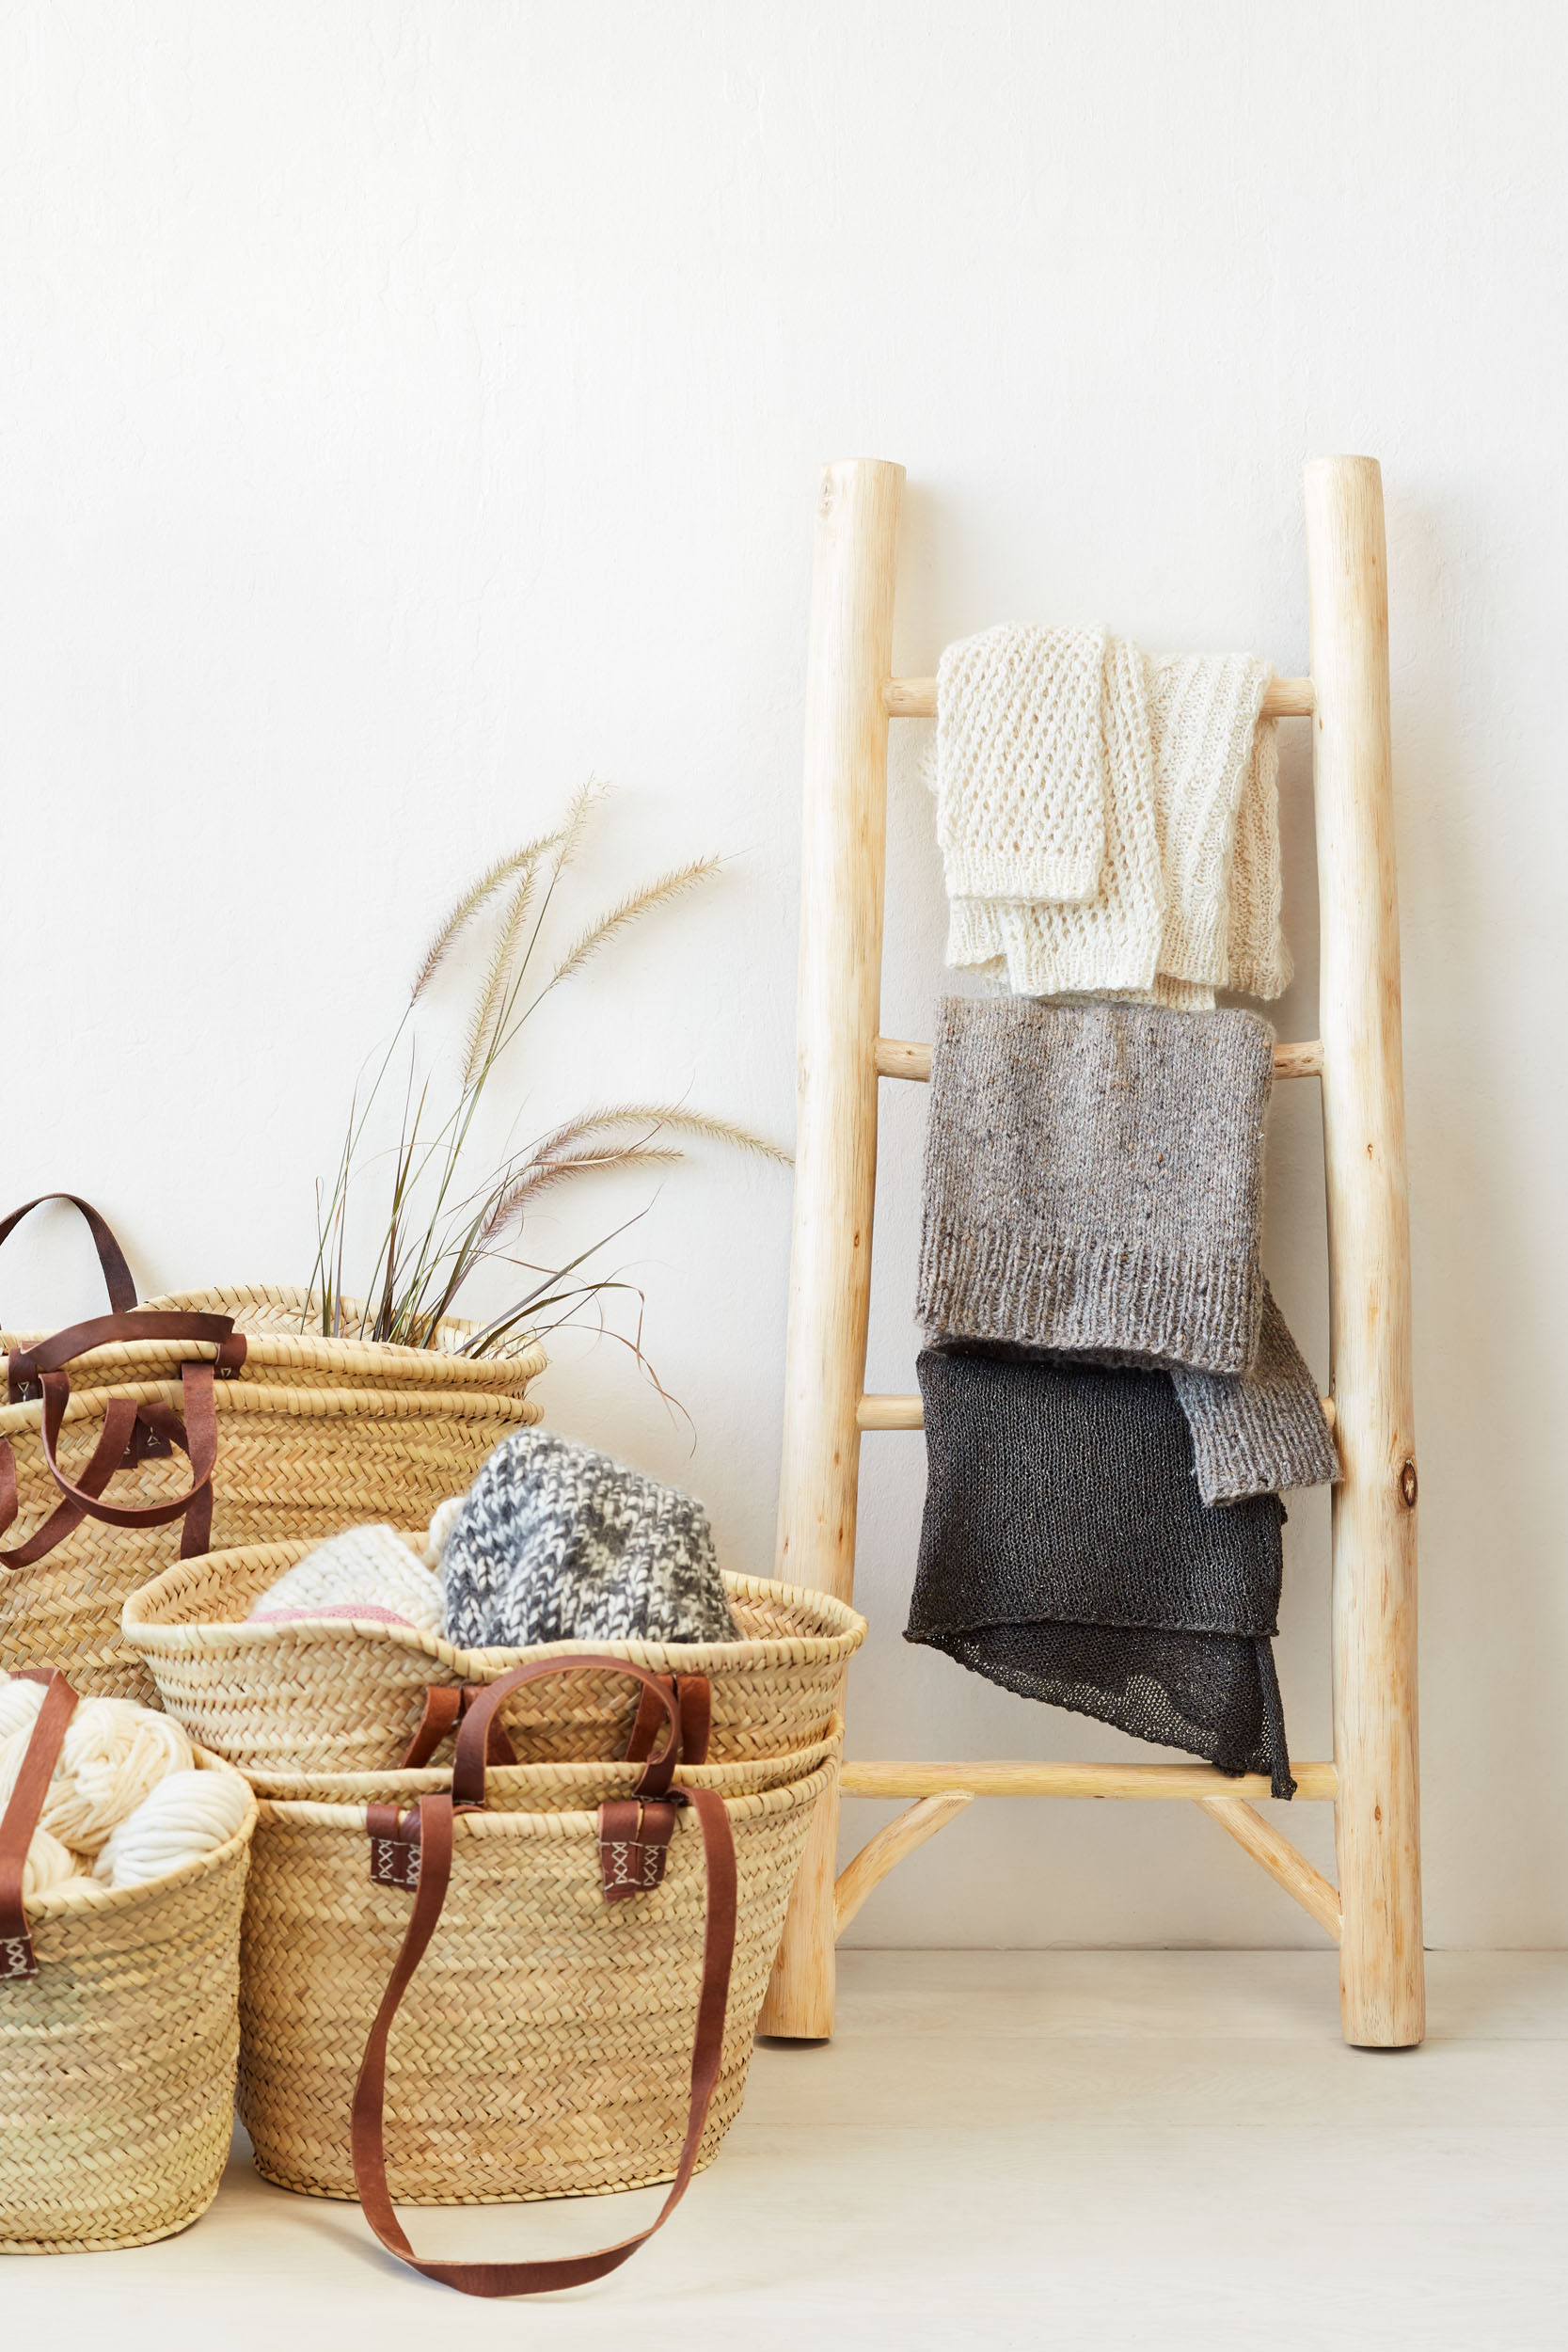 2018.10_001_CocoKnits_StillLife_SweaterLadder